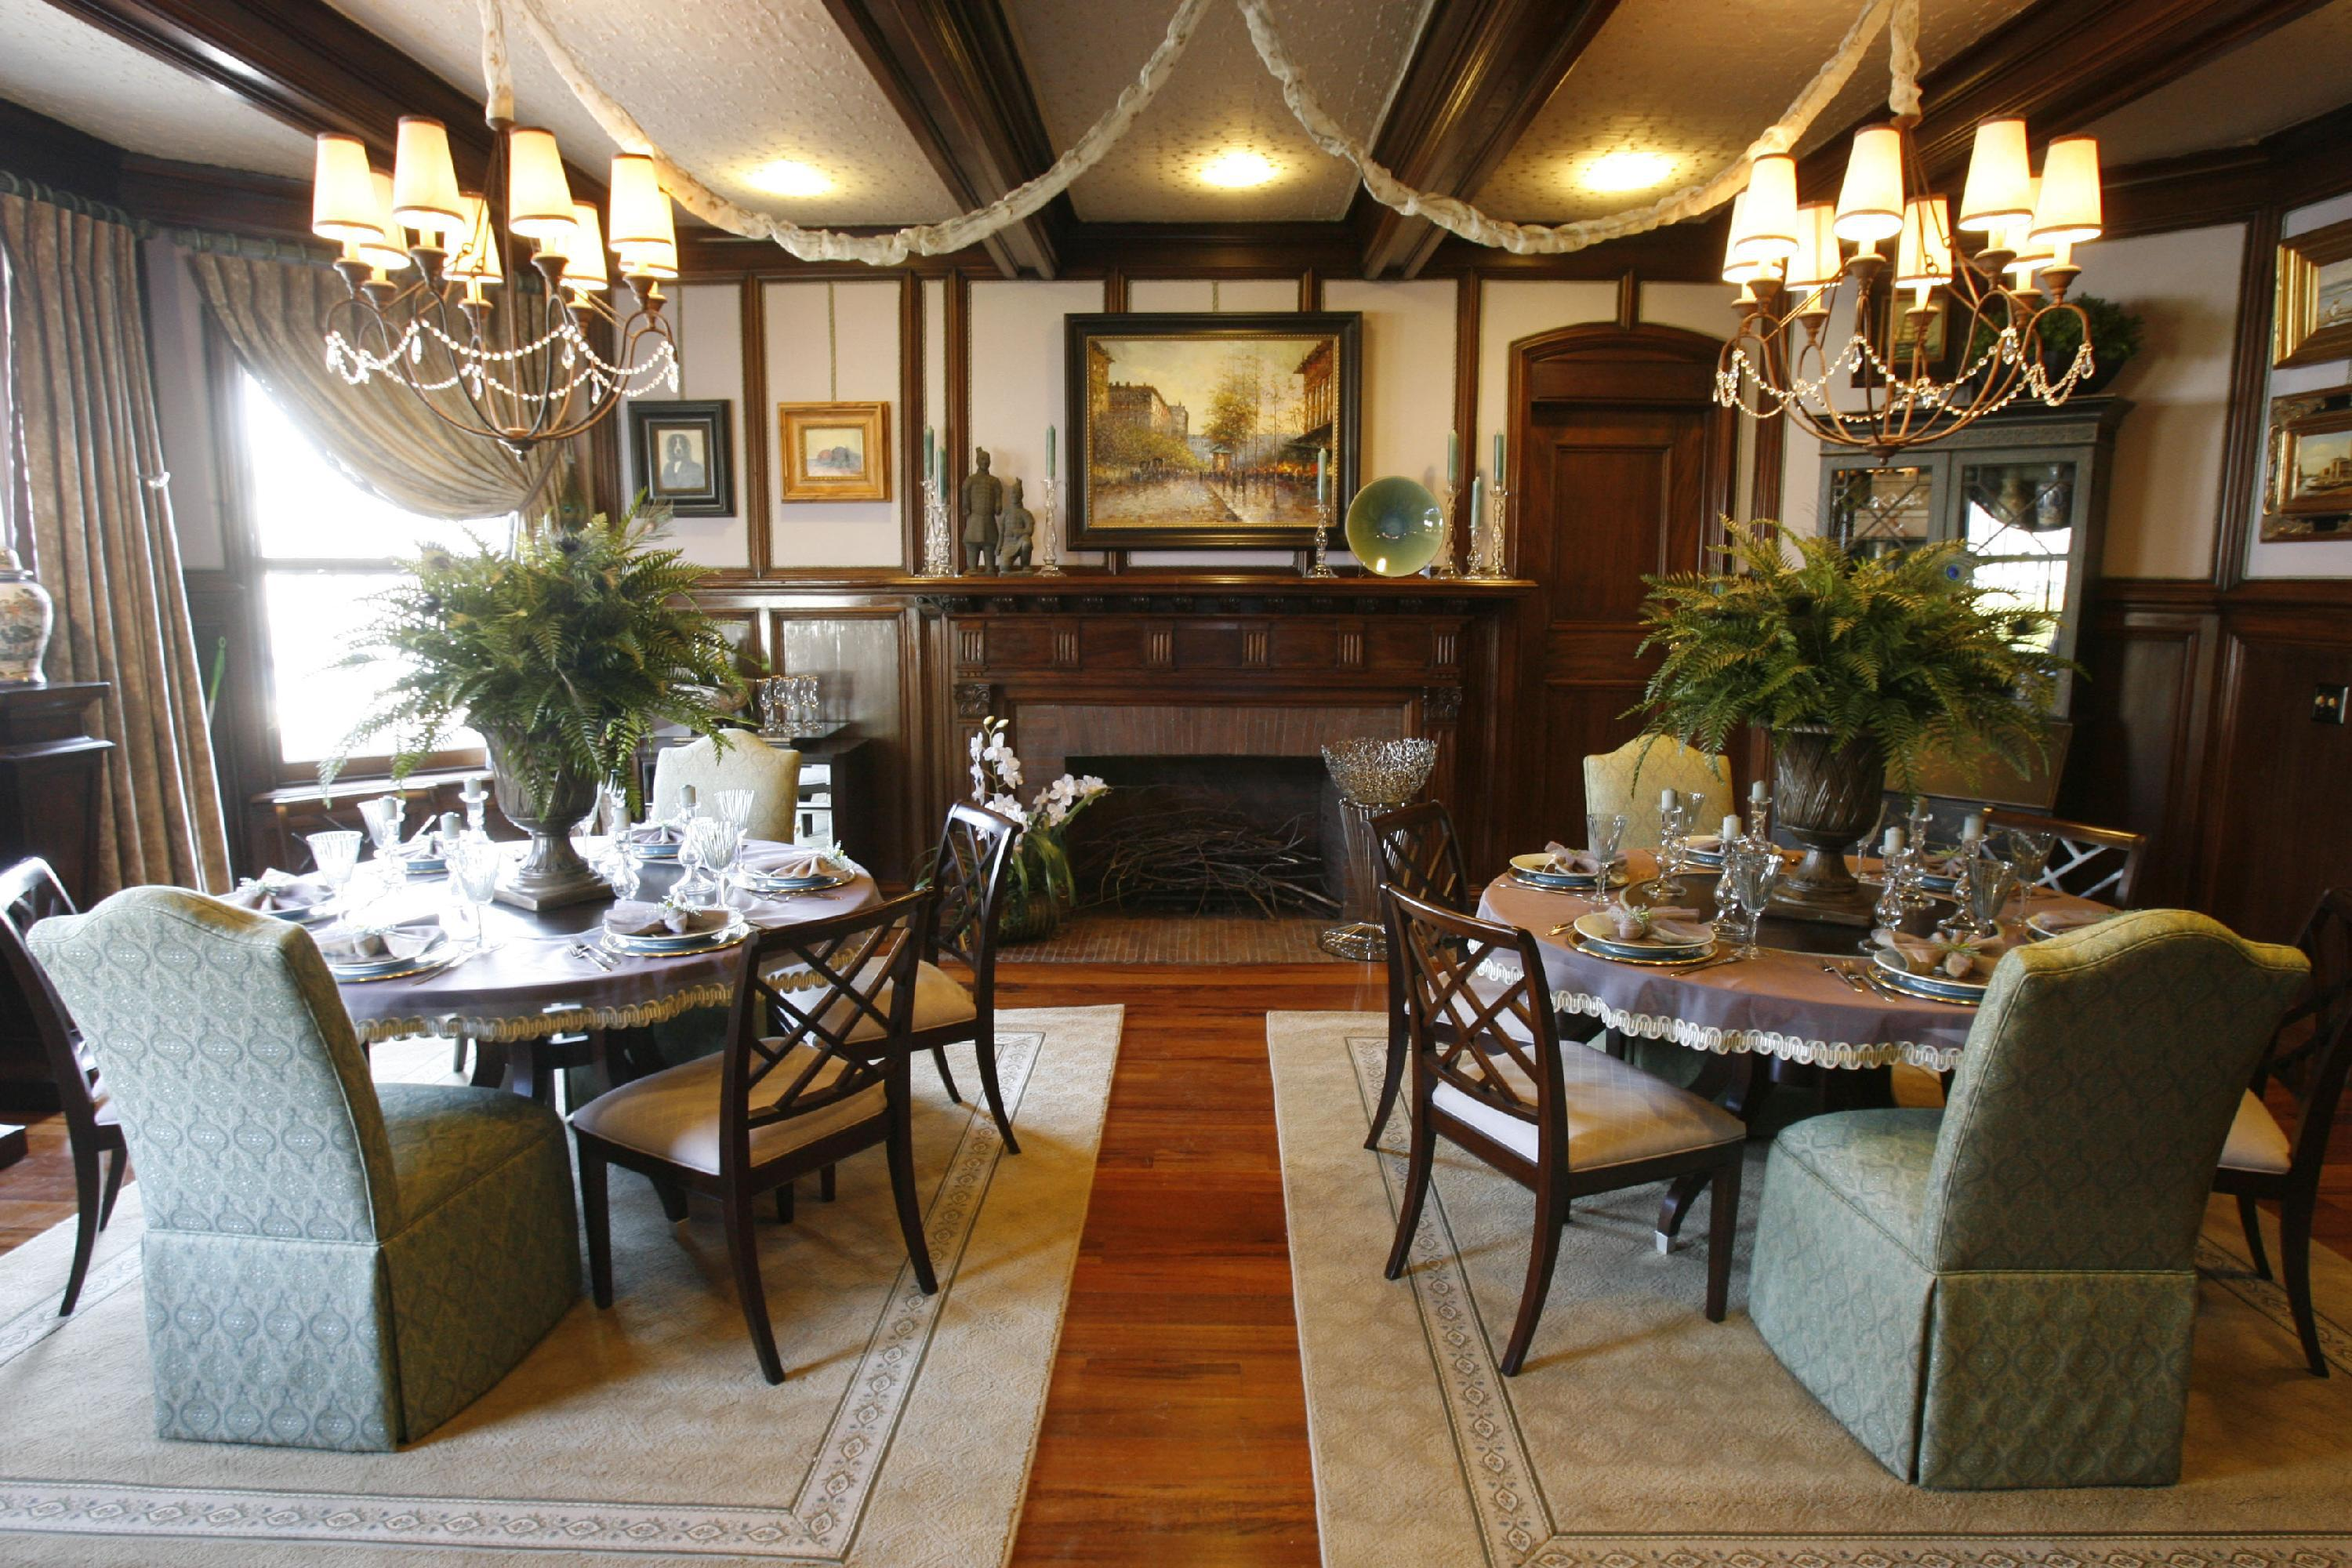 Two round dining tables were found in the dining room of Show House 2007, the Silverthorne Mansion on Delaware Avenue. A team from Ethan Allen designed the room. (News file photo/Robert Kirkham)